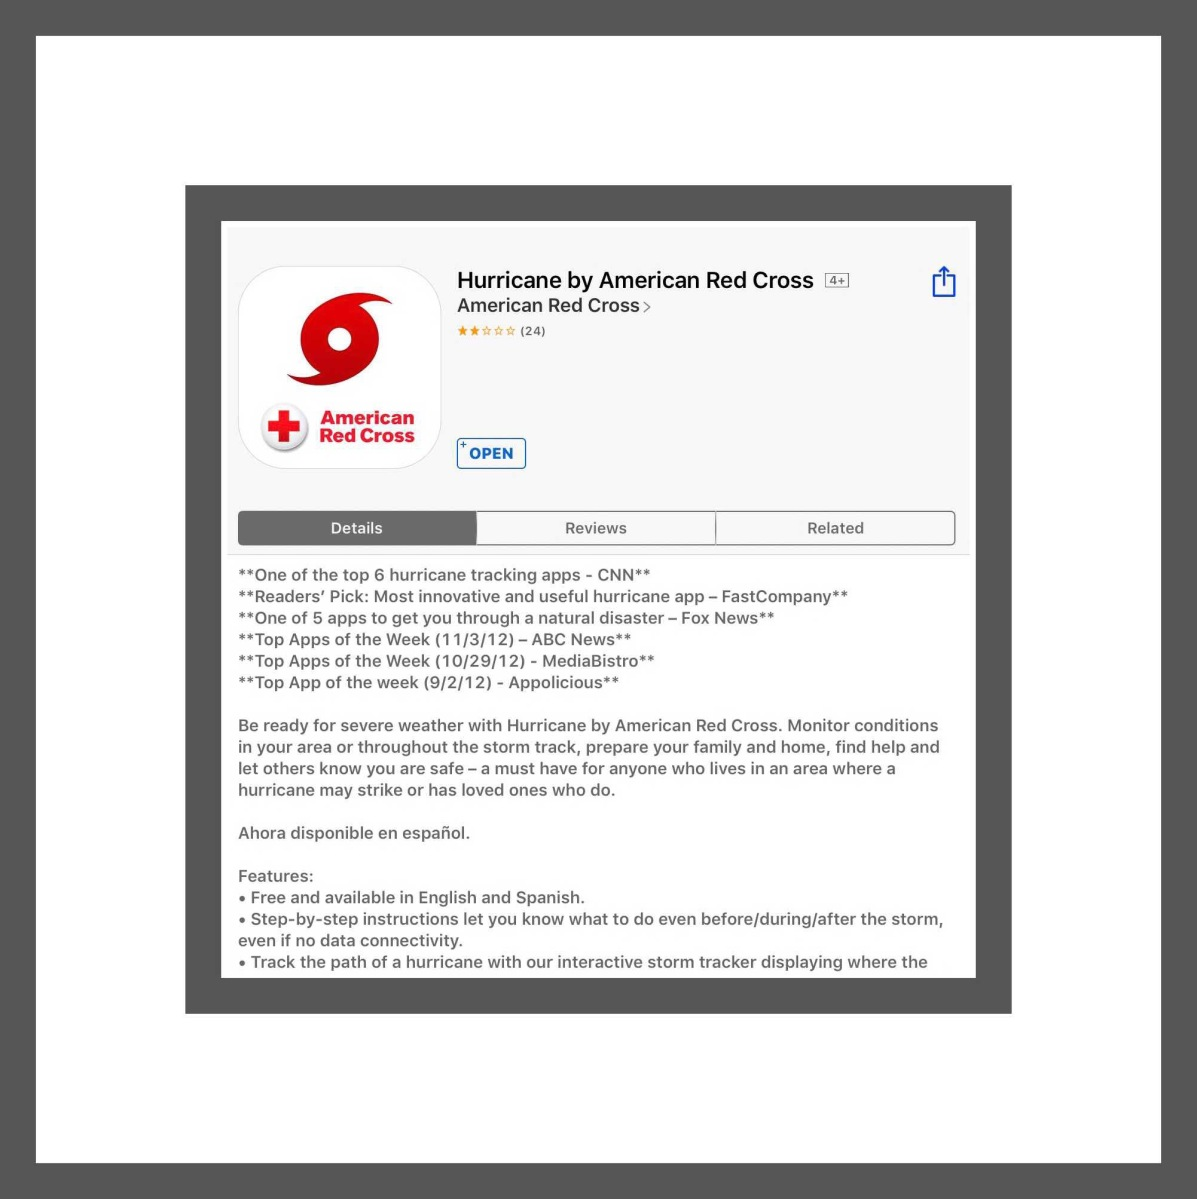 This is what the Hurricane by American Red Cross app looks like in the App Store.